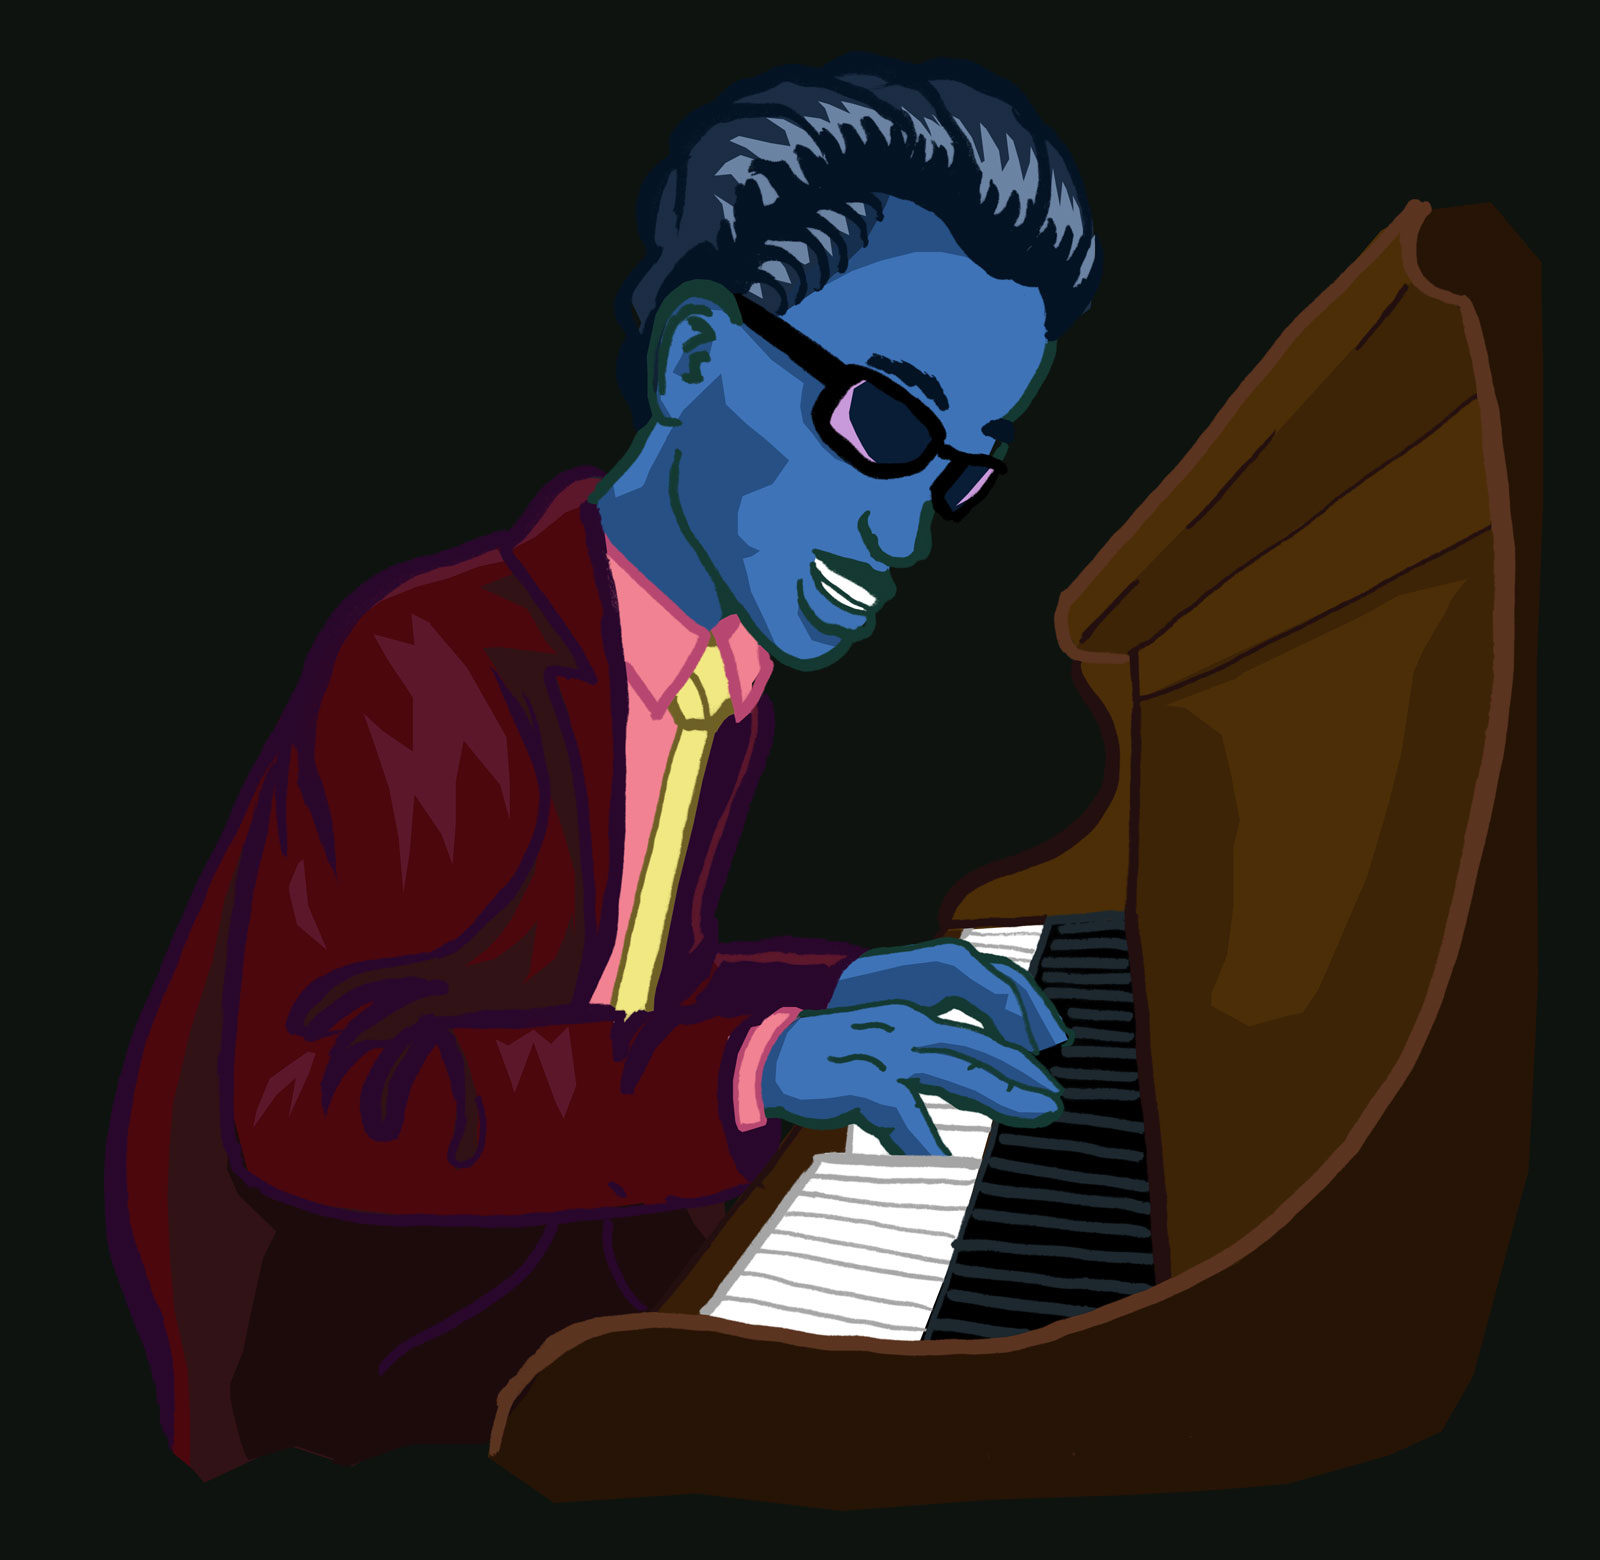 Behind the 8 ball: The story of jazz organist Baby Face